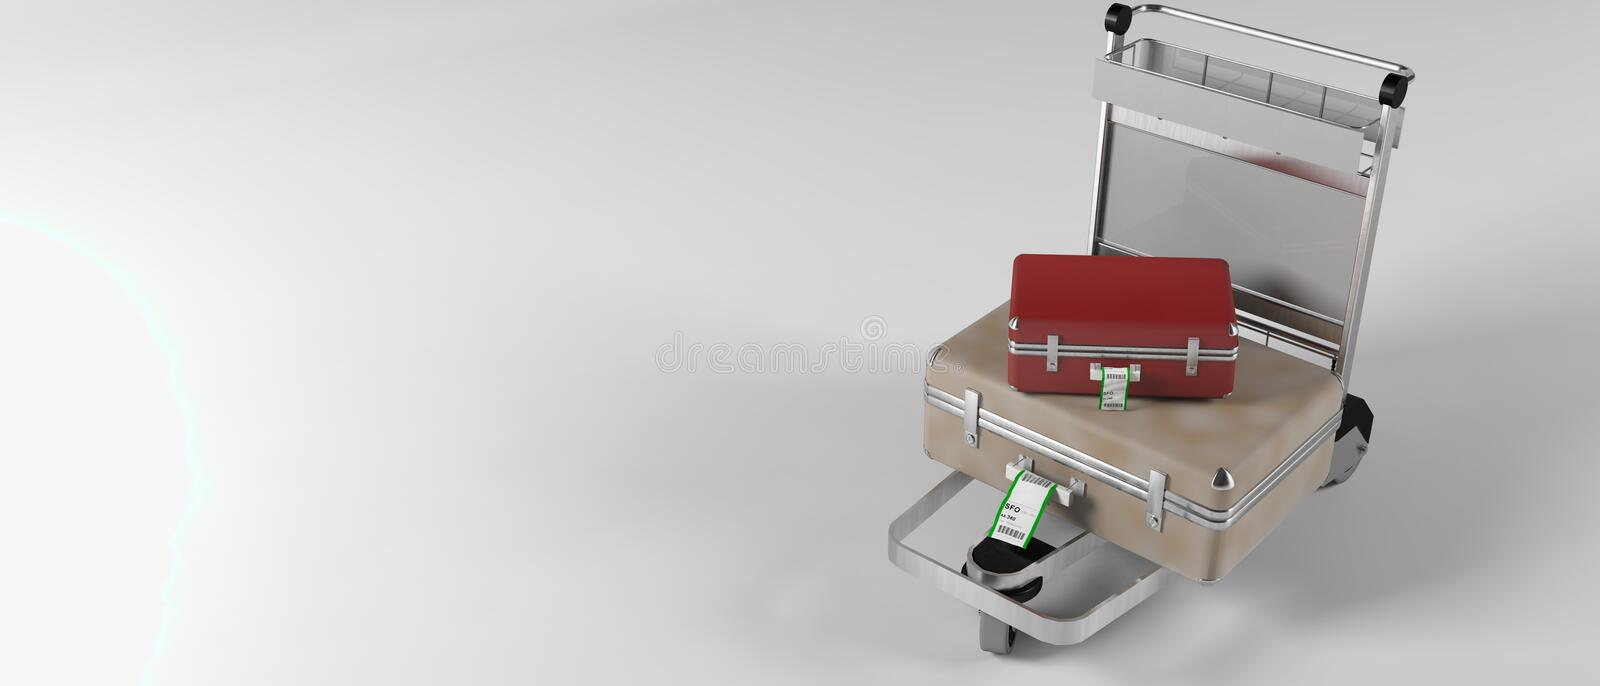 Download Abstract Image Of An Airport Luggage Trolley Stock Illustration - Image: 20167377